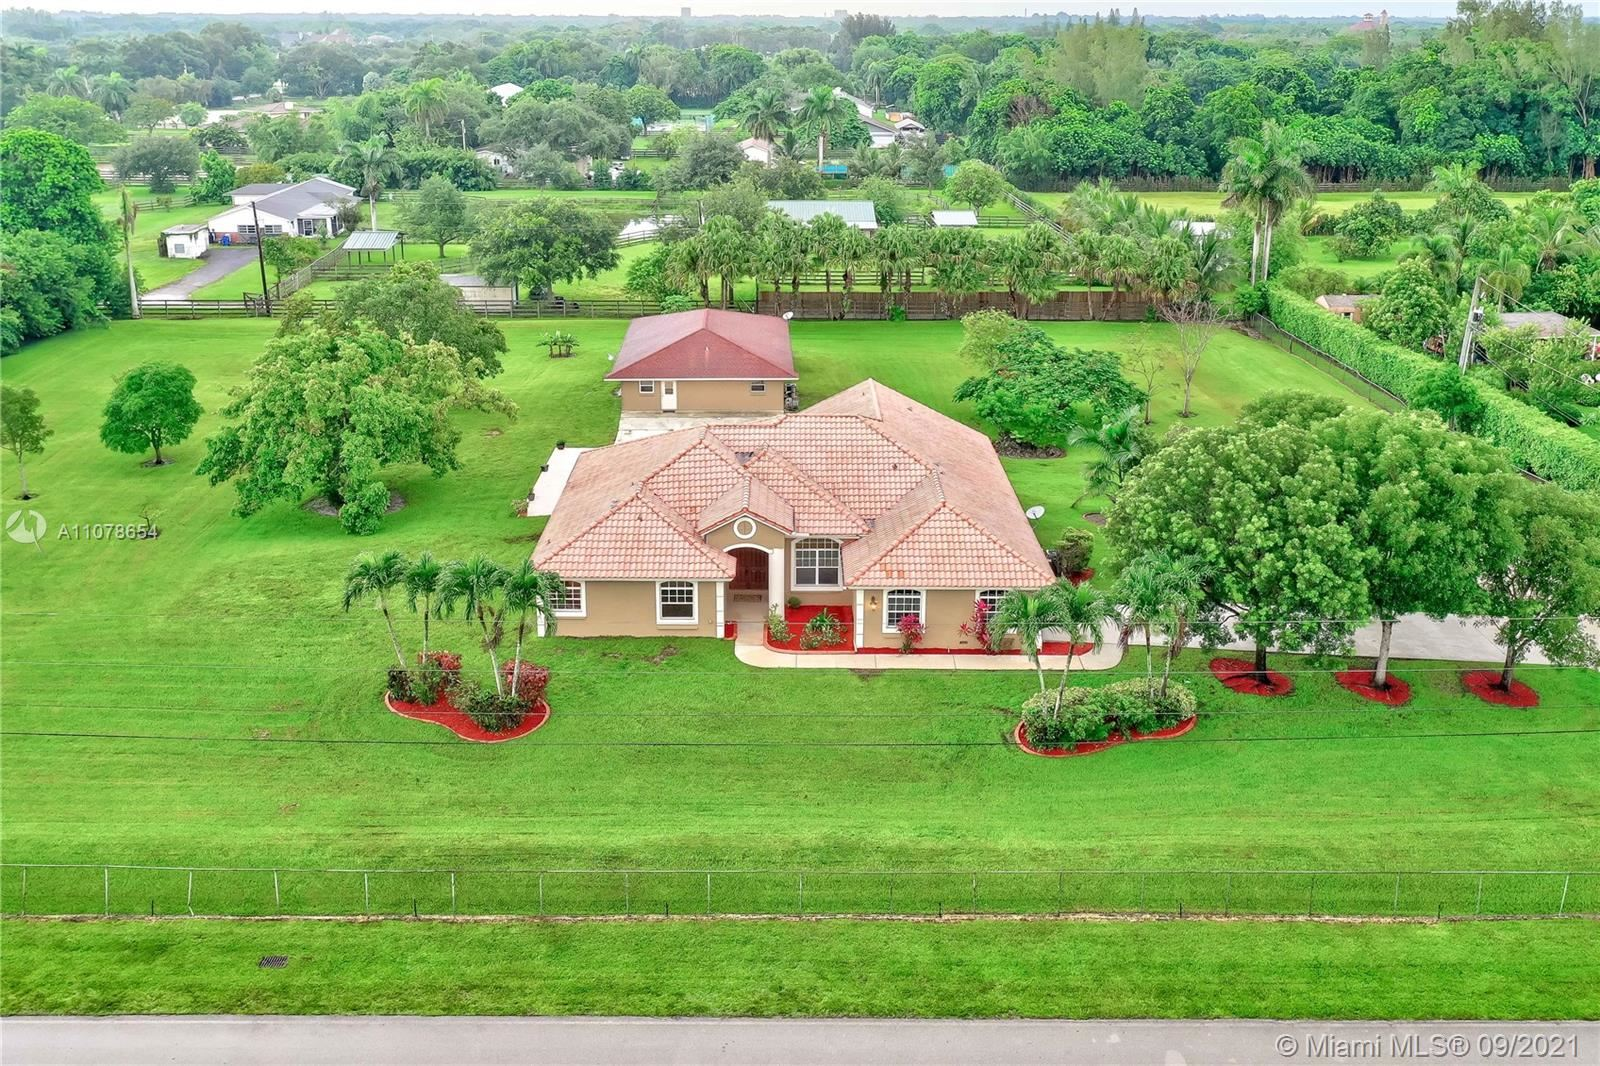 12851 Luray Rd, SouthWest Ranches, FL 33330 - #: A11078654